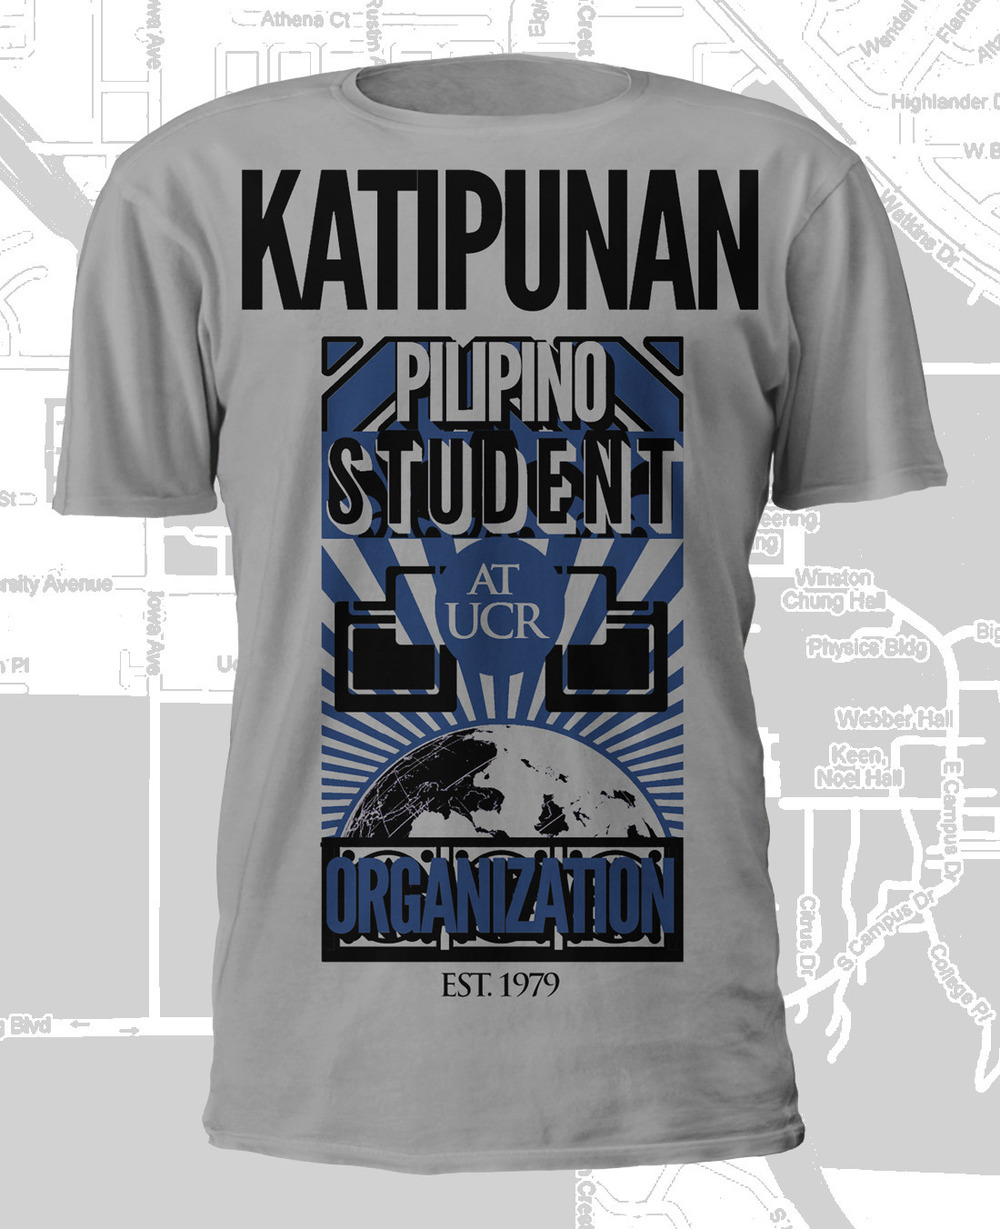 Design for Katipunan Pilipino Student Organization at UC Riverside (2011)